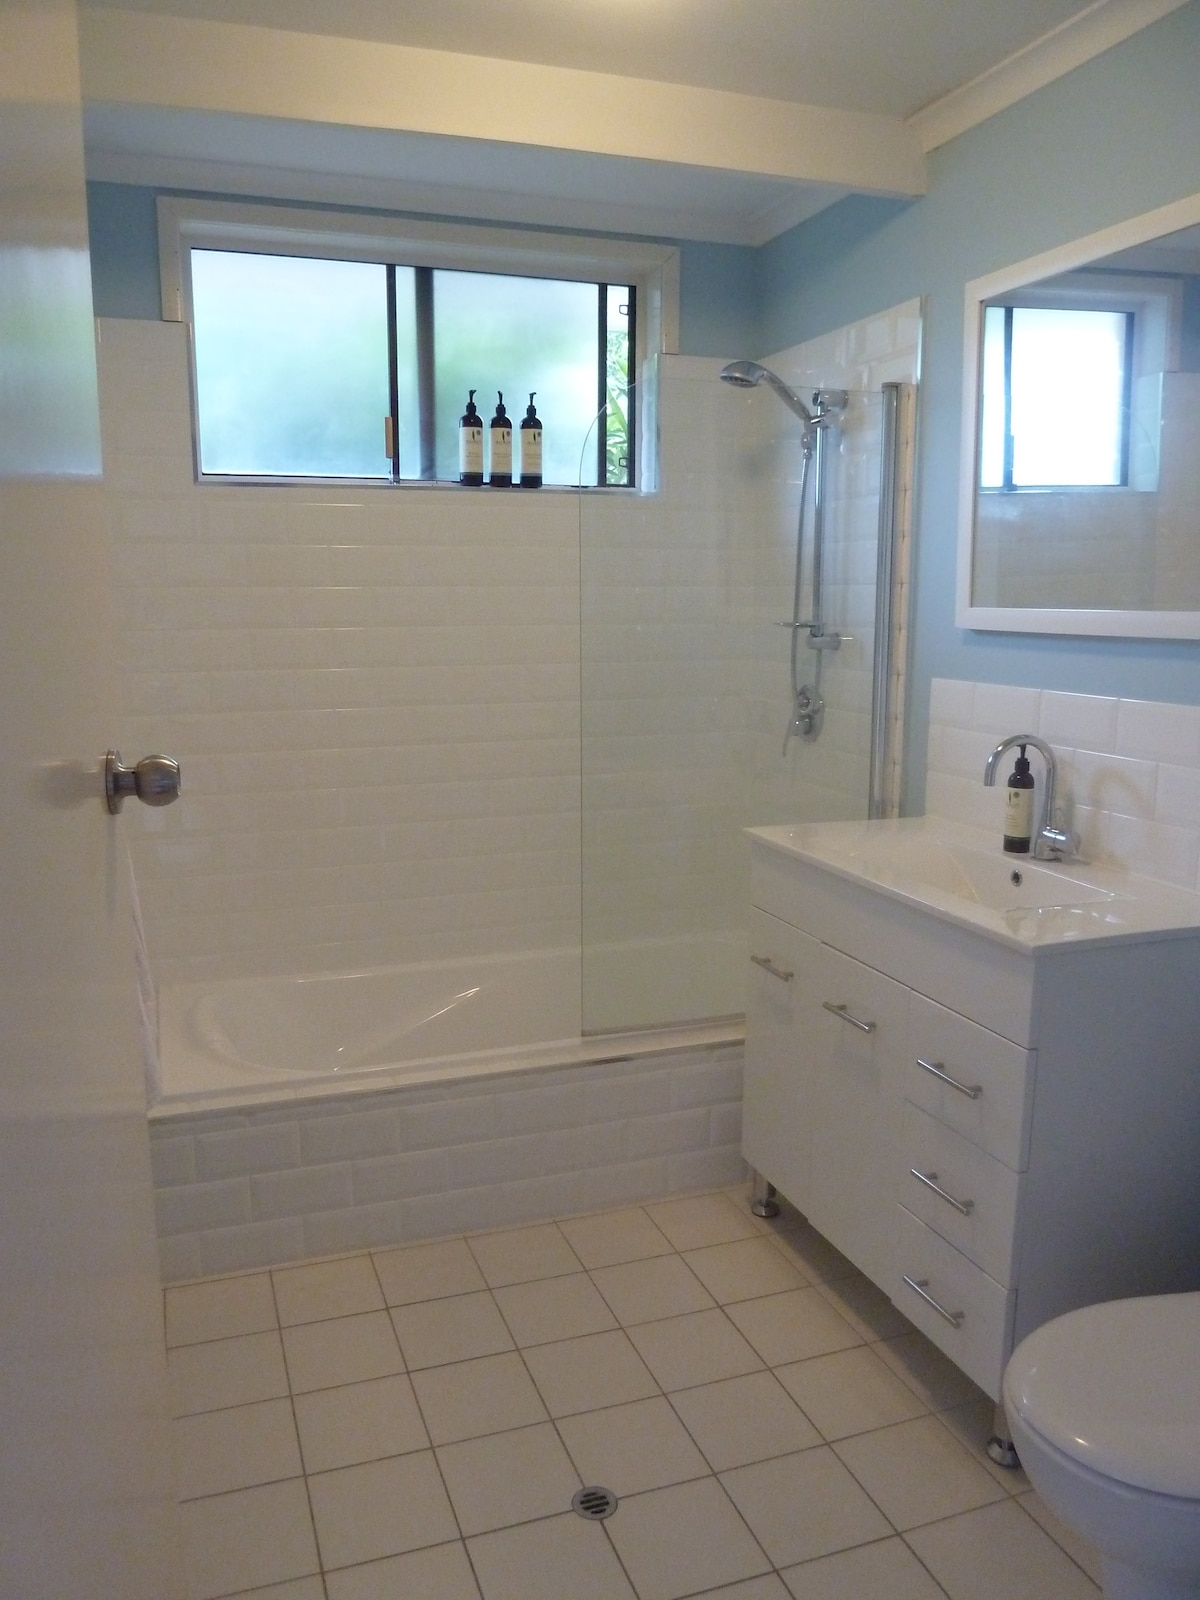 Private newly renovated bathroom, towels and basic toiletries available